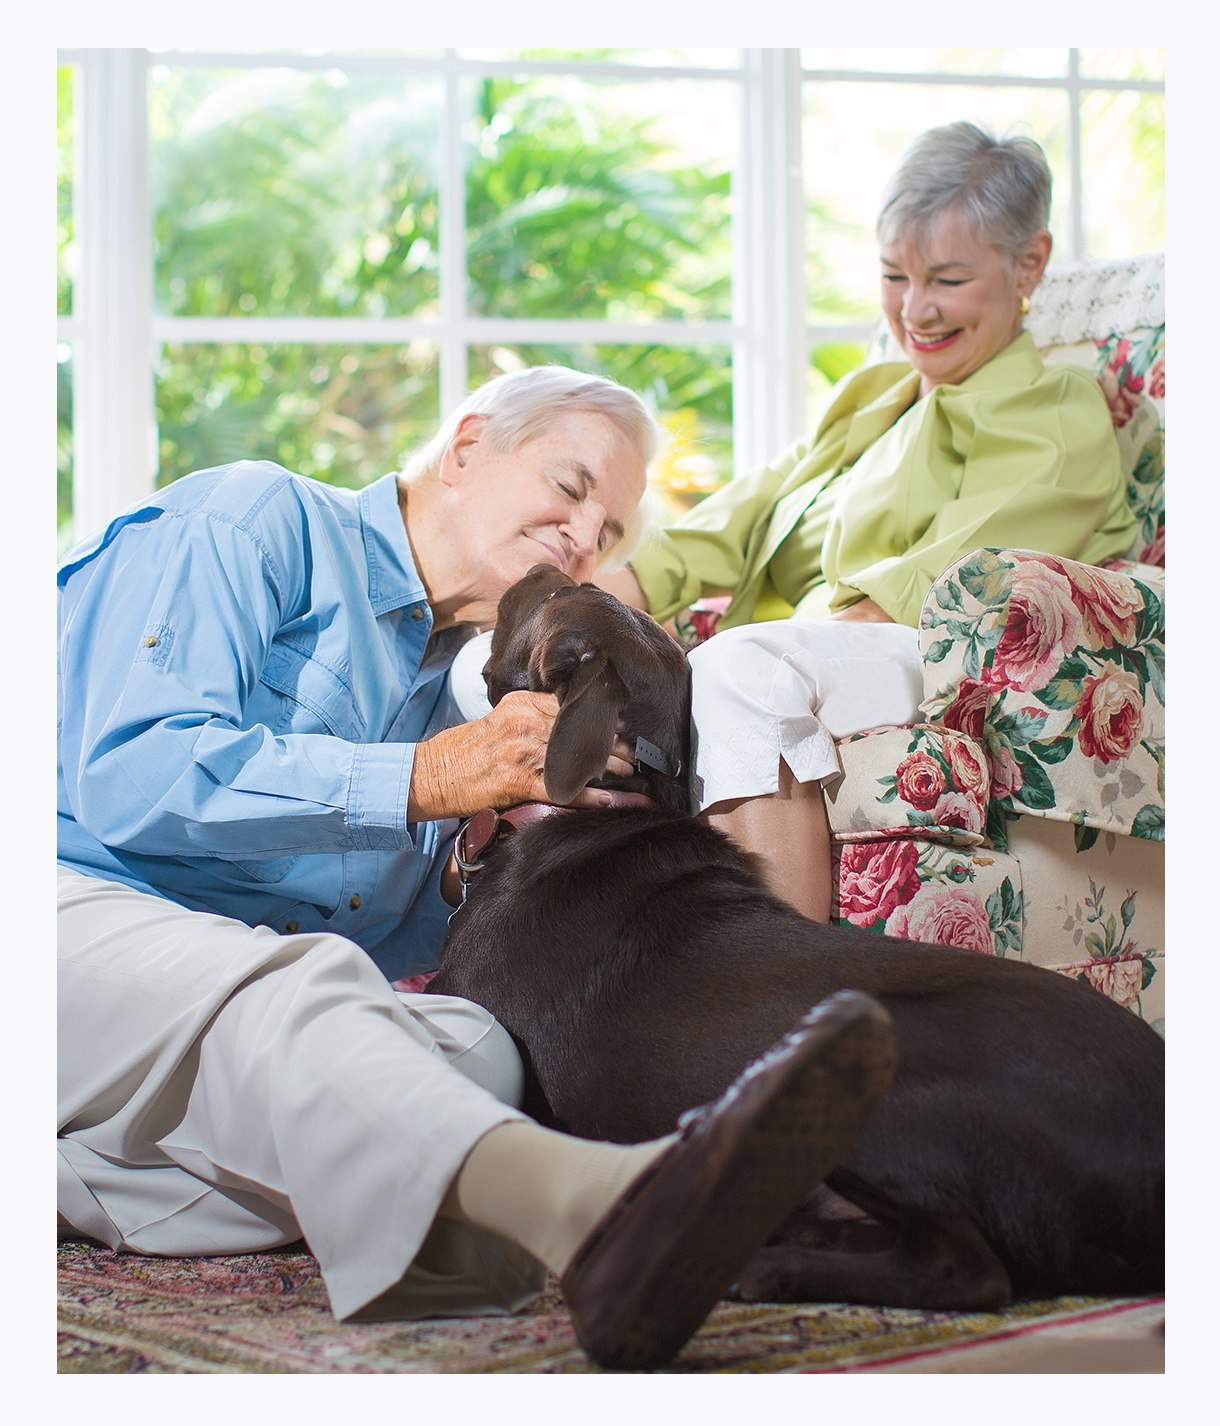 Elderly couple at home enjoying dog therapies, home care, medicaid, medicare, free transportation provided, onsite clinics